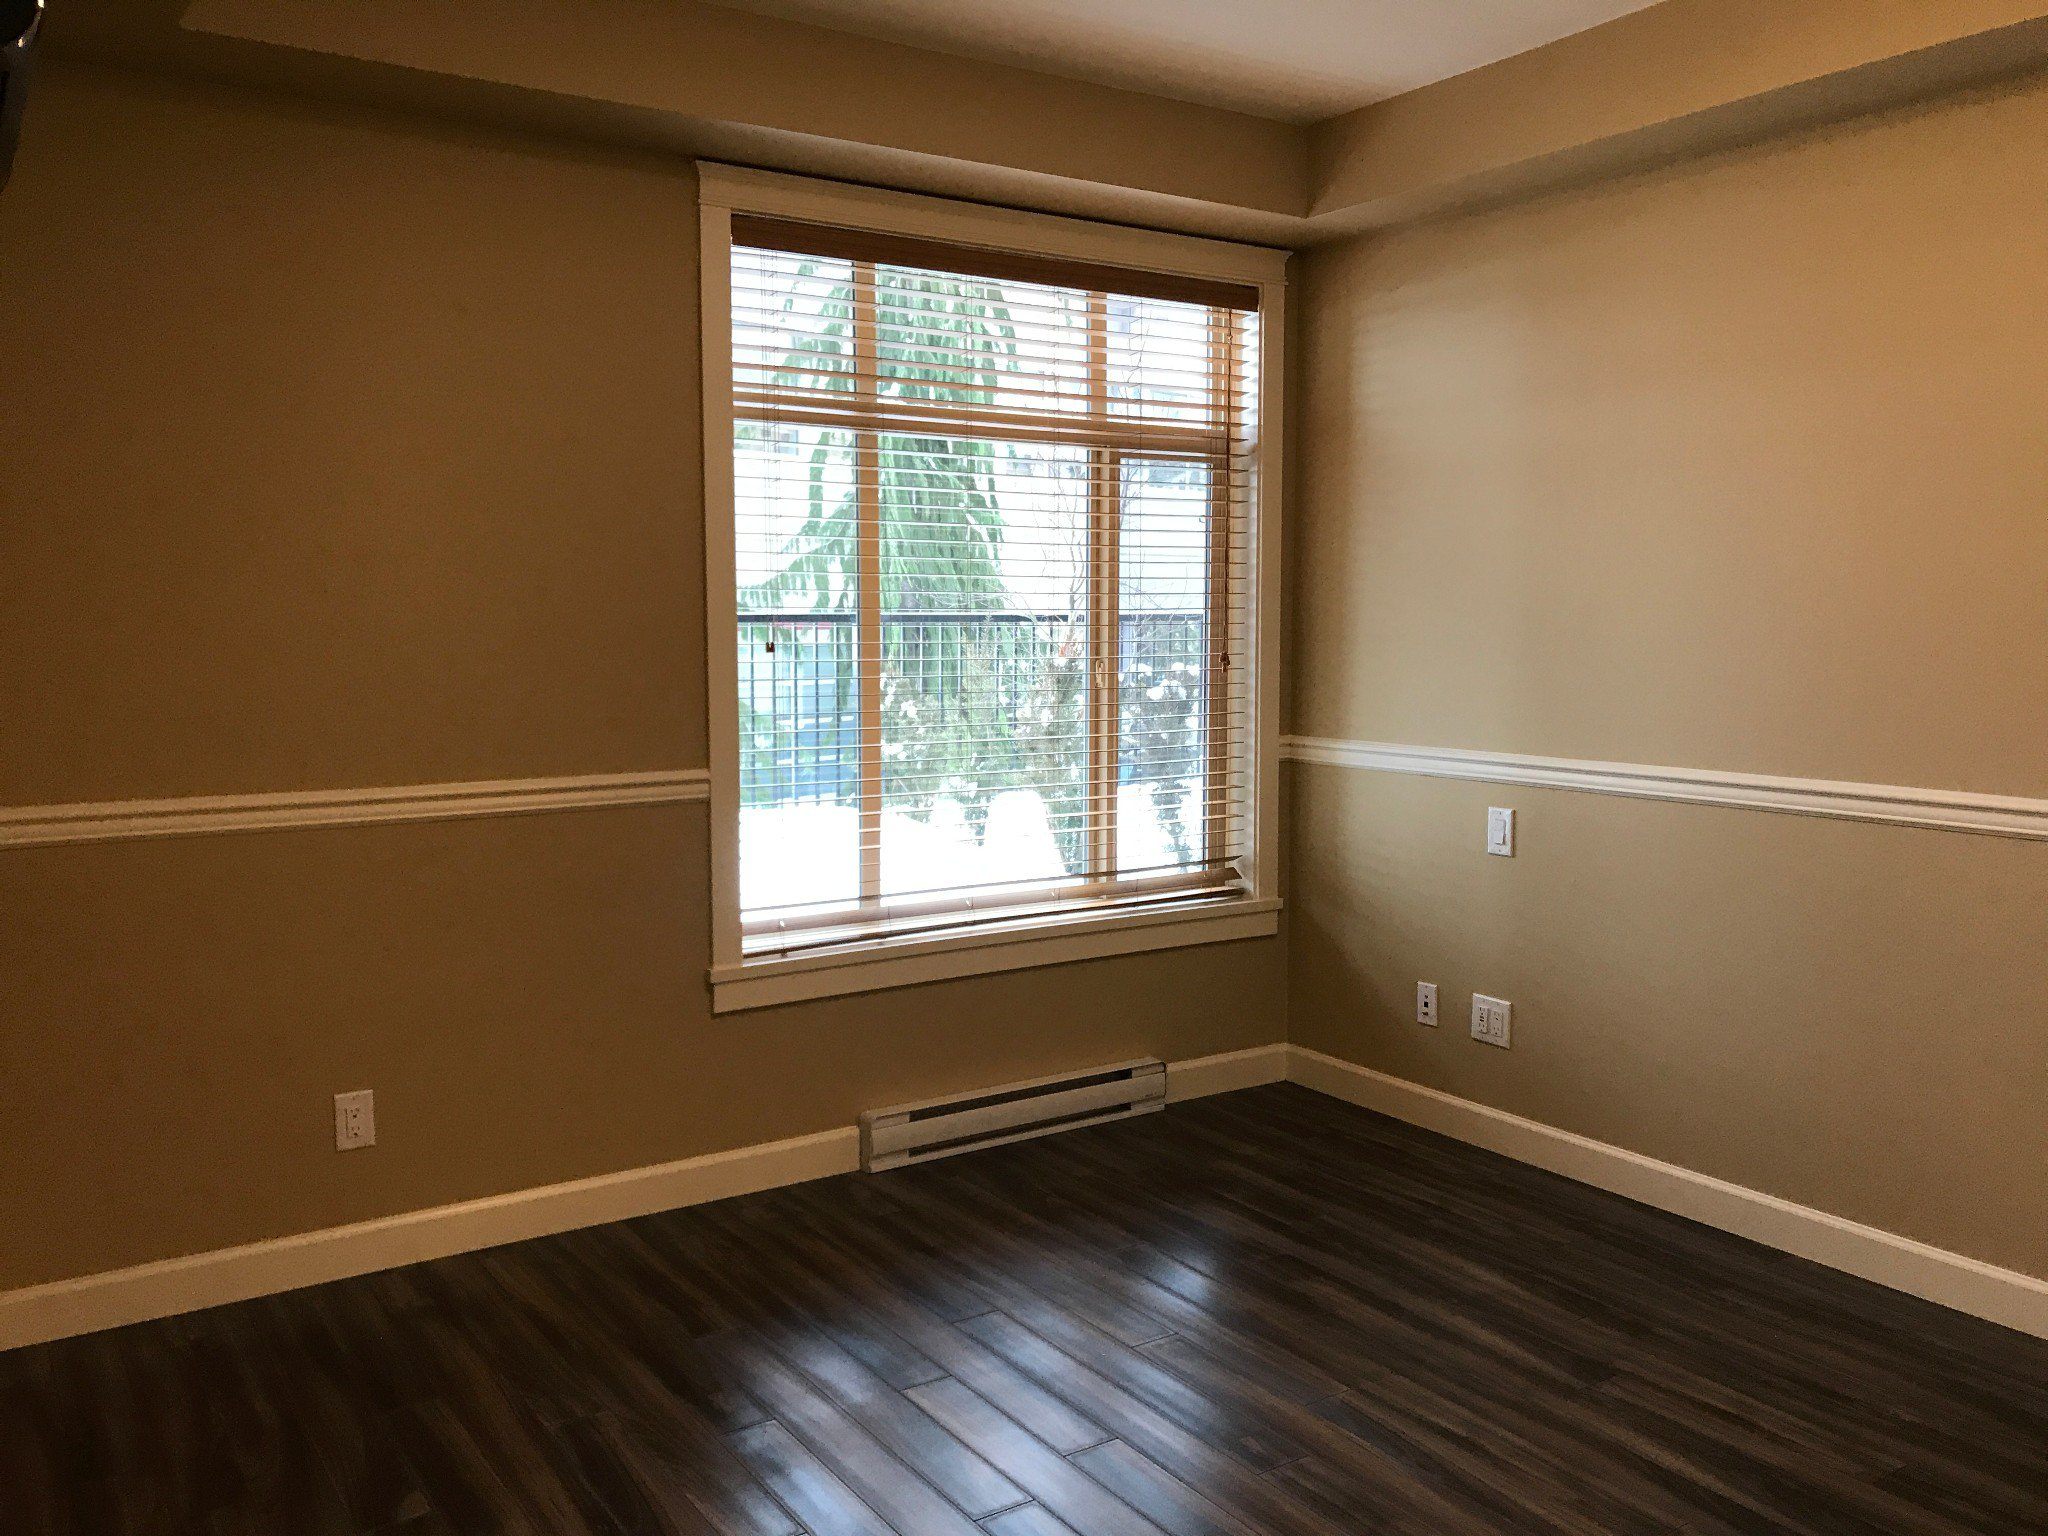 Photo 6: Photos: #116 32445 Simon Ave. in Abbotsford: Central Abbotsford Condo for rent